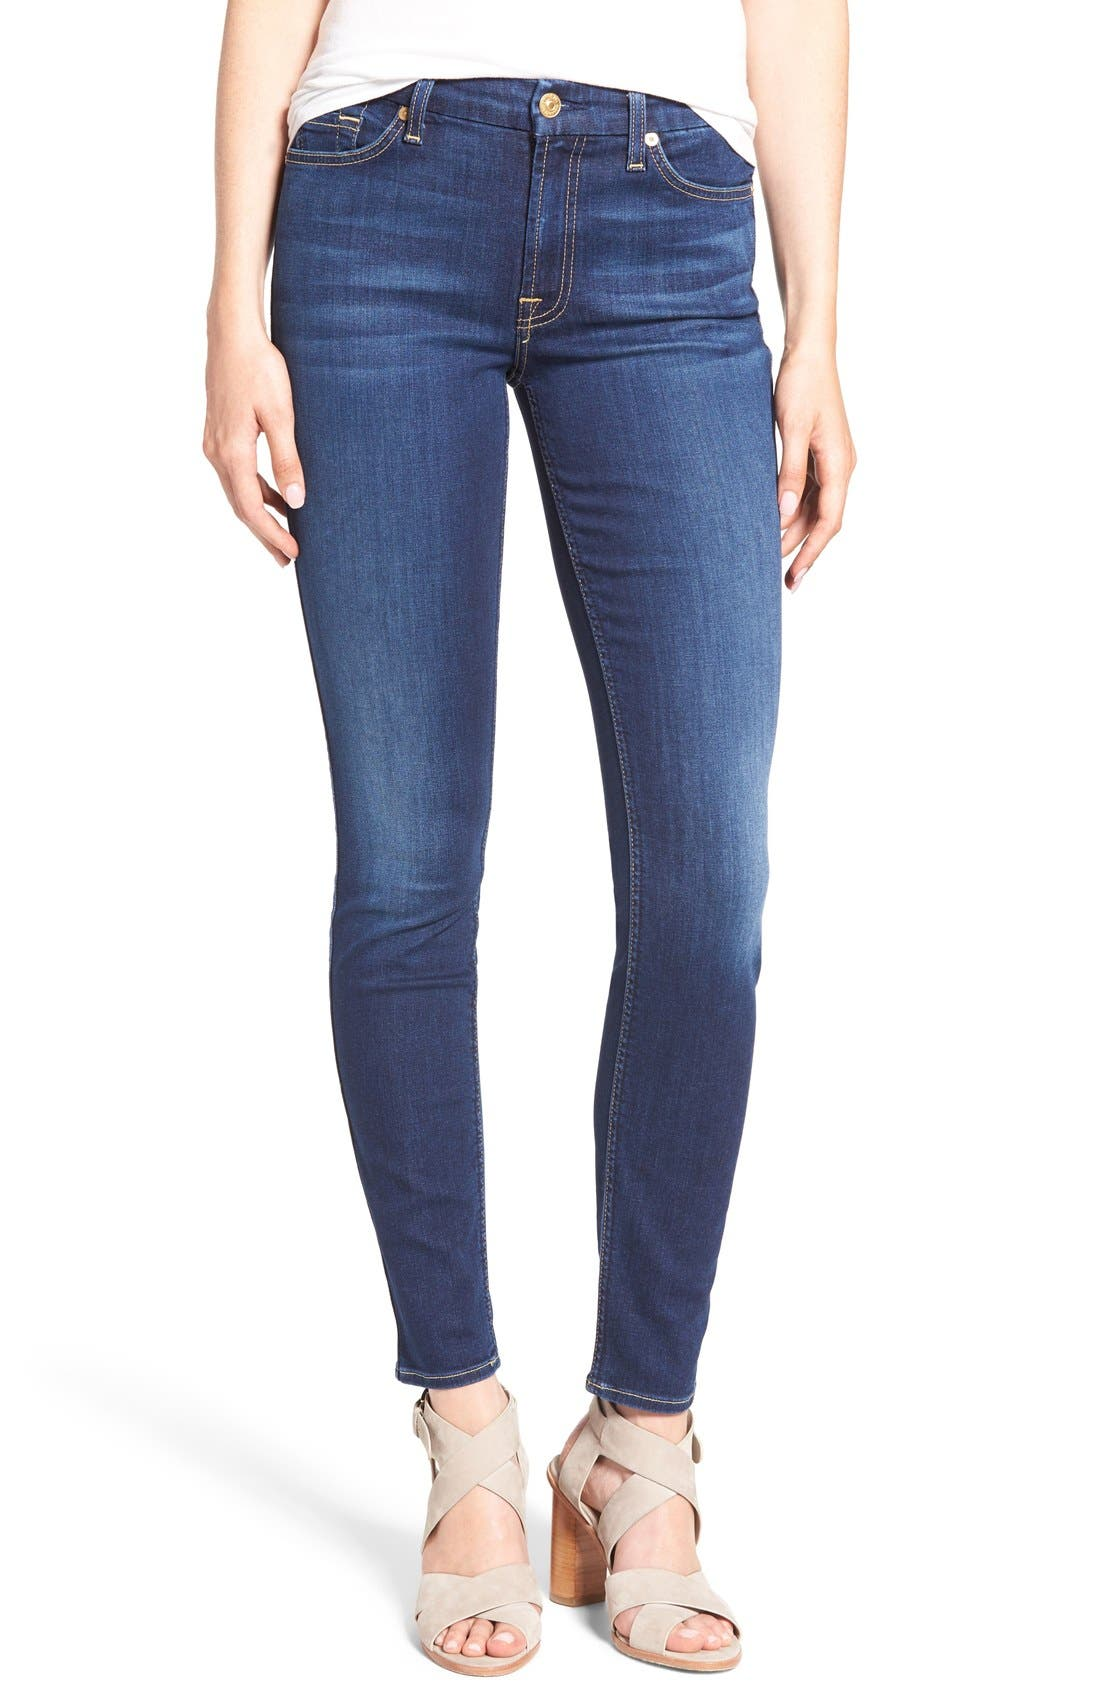 Alternate Image 1 Selected - 7 For All Mankind® 'b(air) - The Skinny' Skinny Jeans